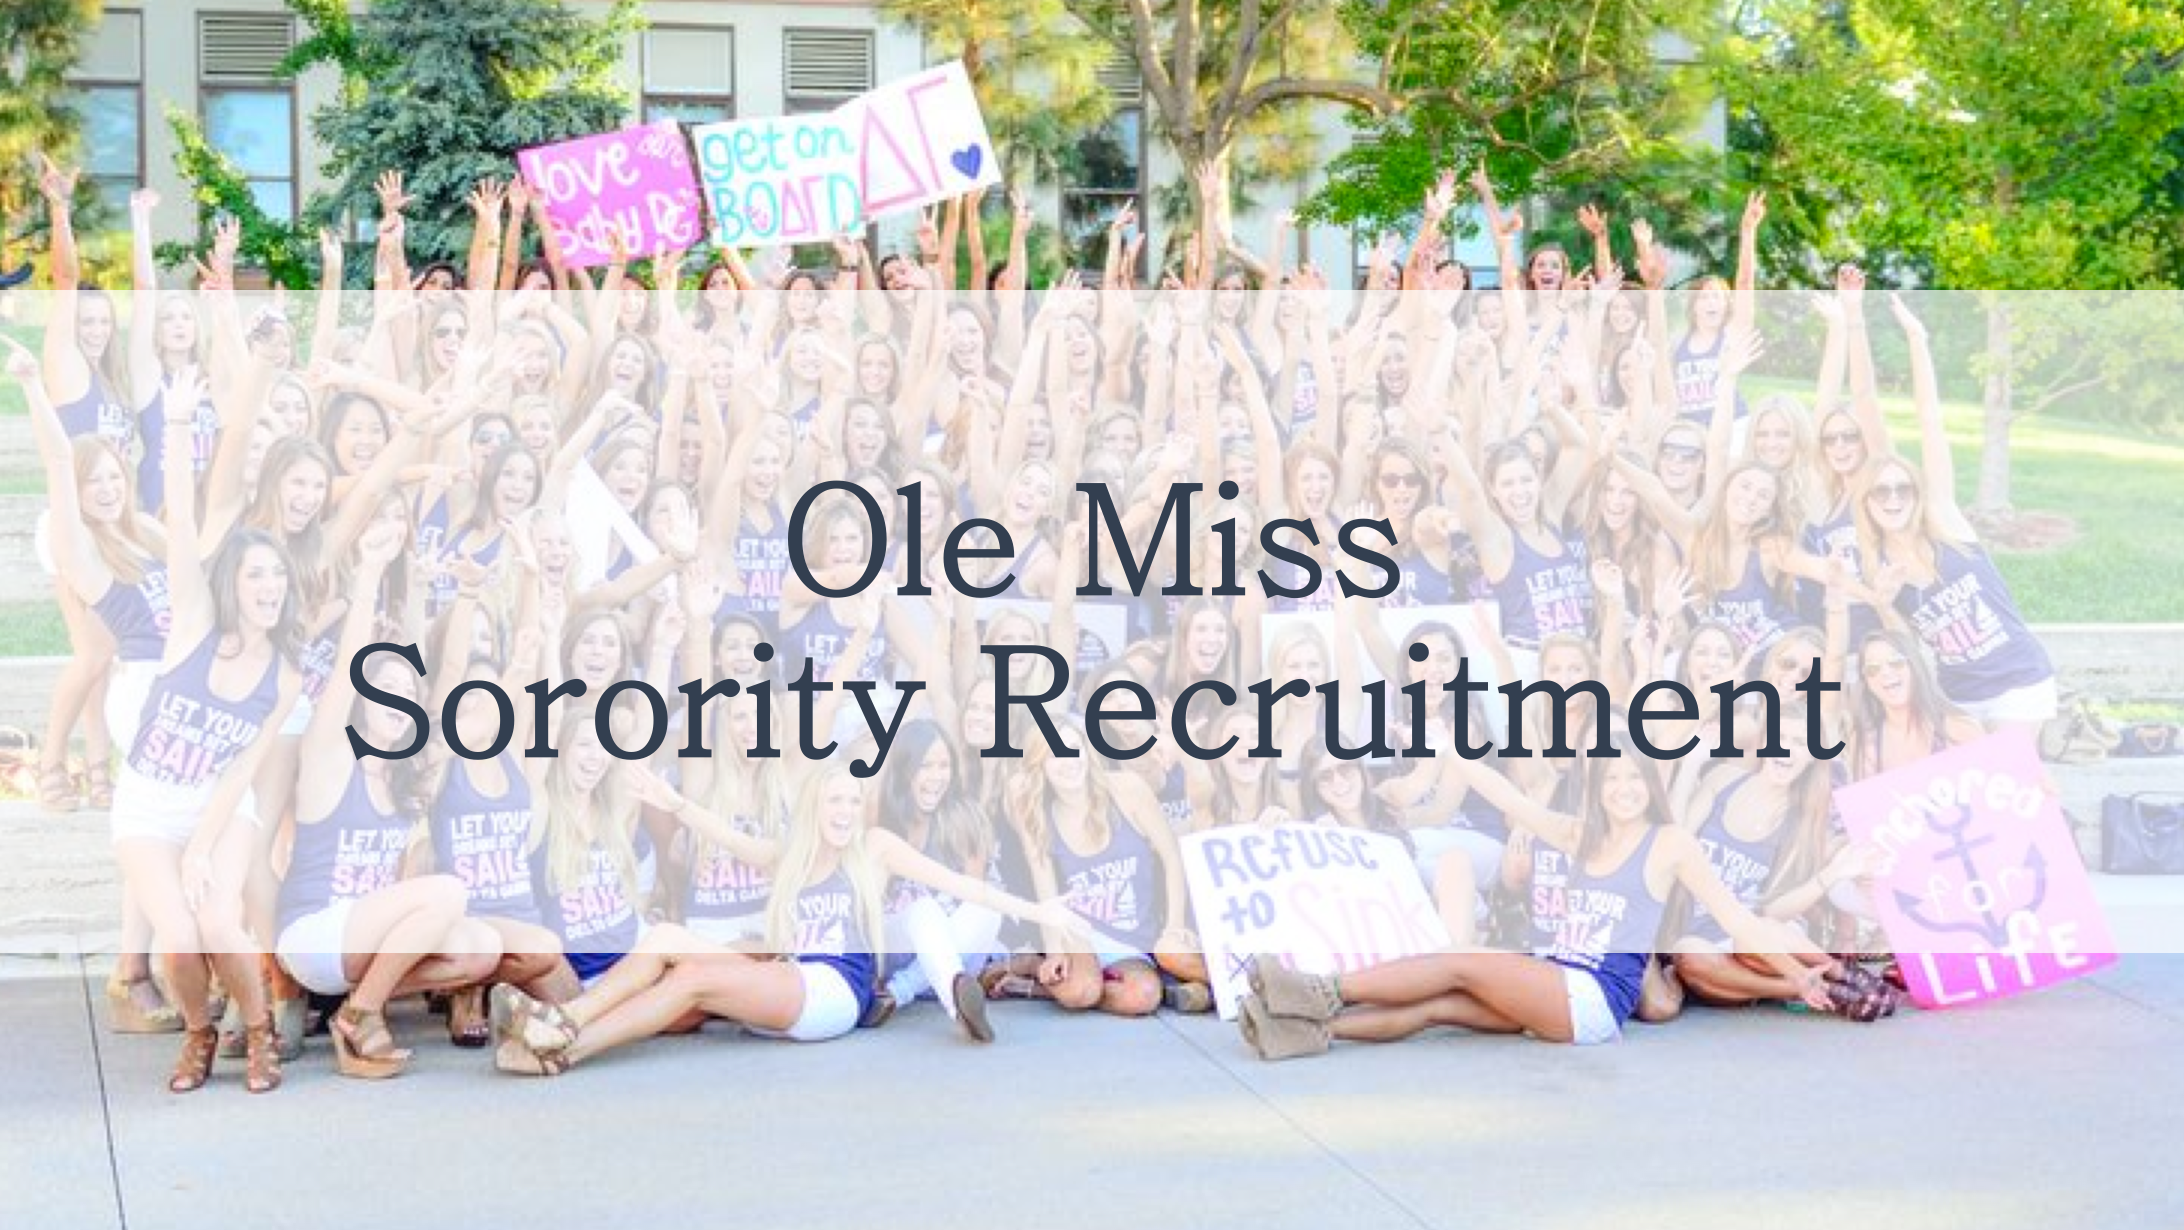 ole miss sorority recruitment 2019, sorority rush